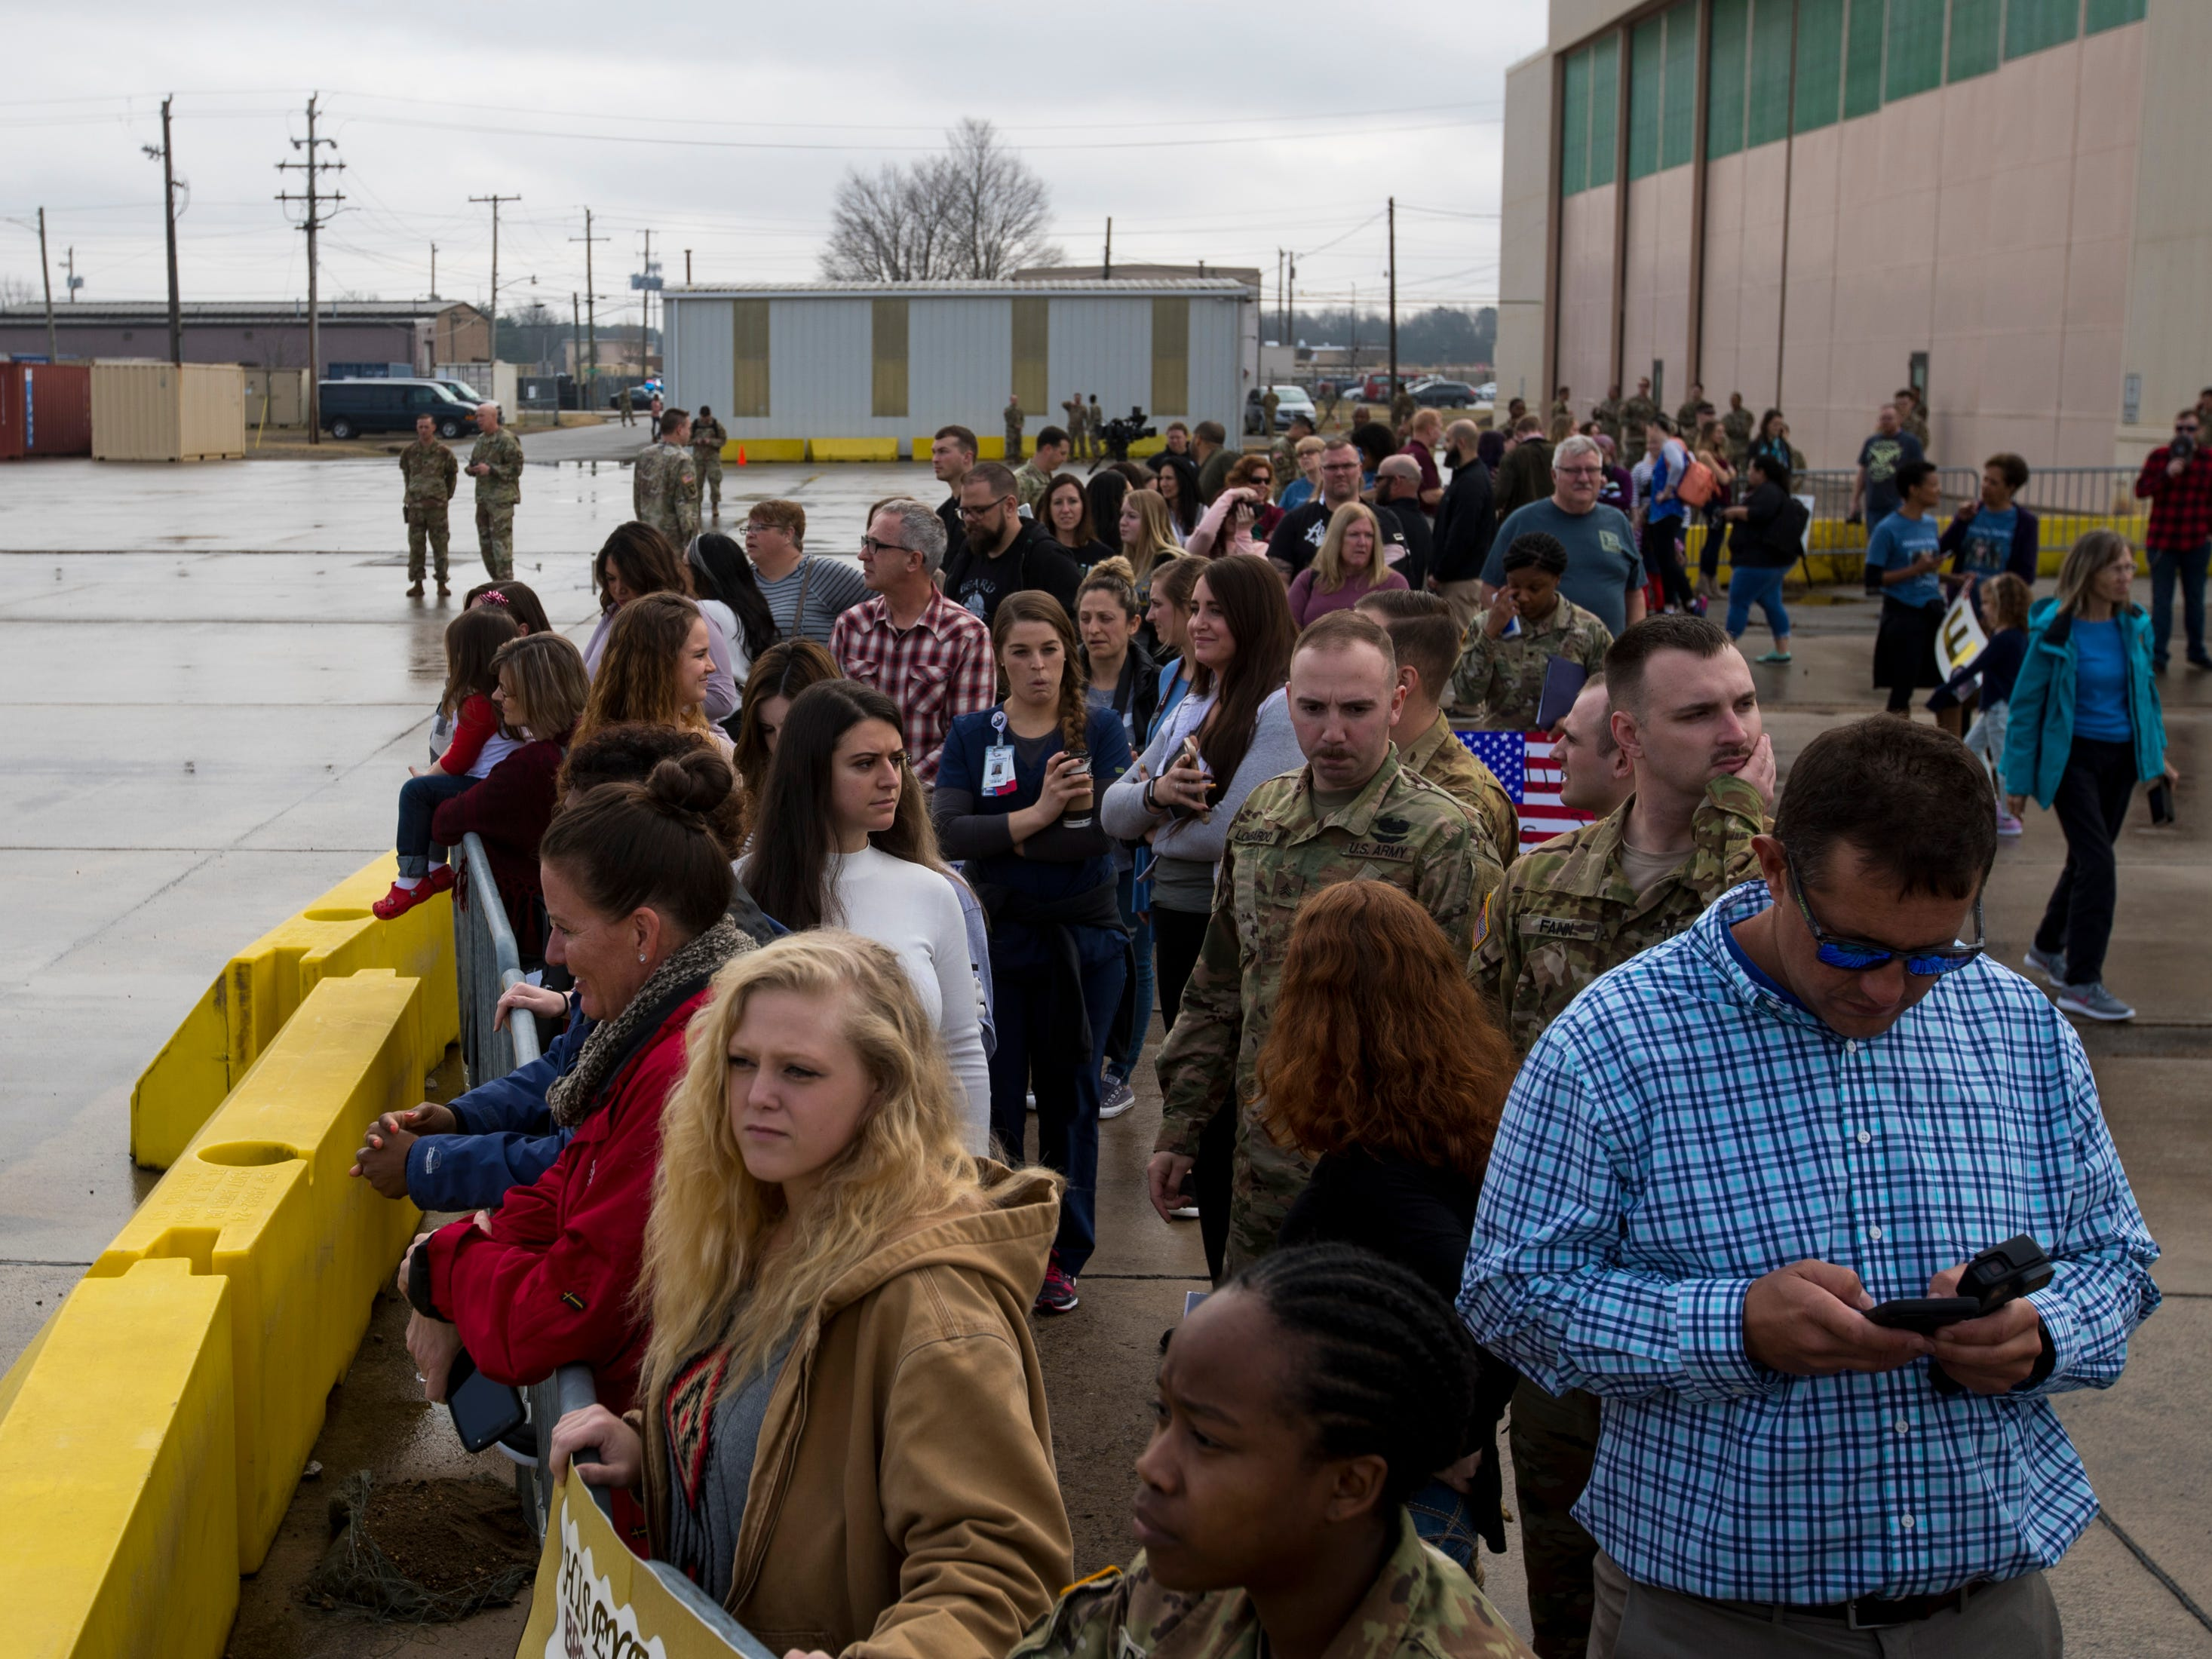 Friends and family members wait for the soldiers to arrive during the welcome home ceremony for members of the 101st Combat Aviation Brigade at Fort Campbell in Clarksville on Tuesday, Feb. 5, 2019. The soldiers were returning from a nine-month deployment to Afghanistan.